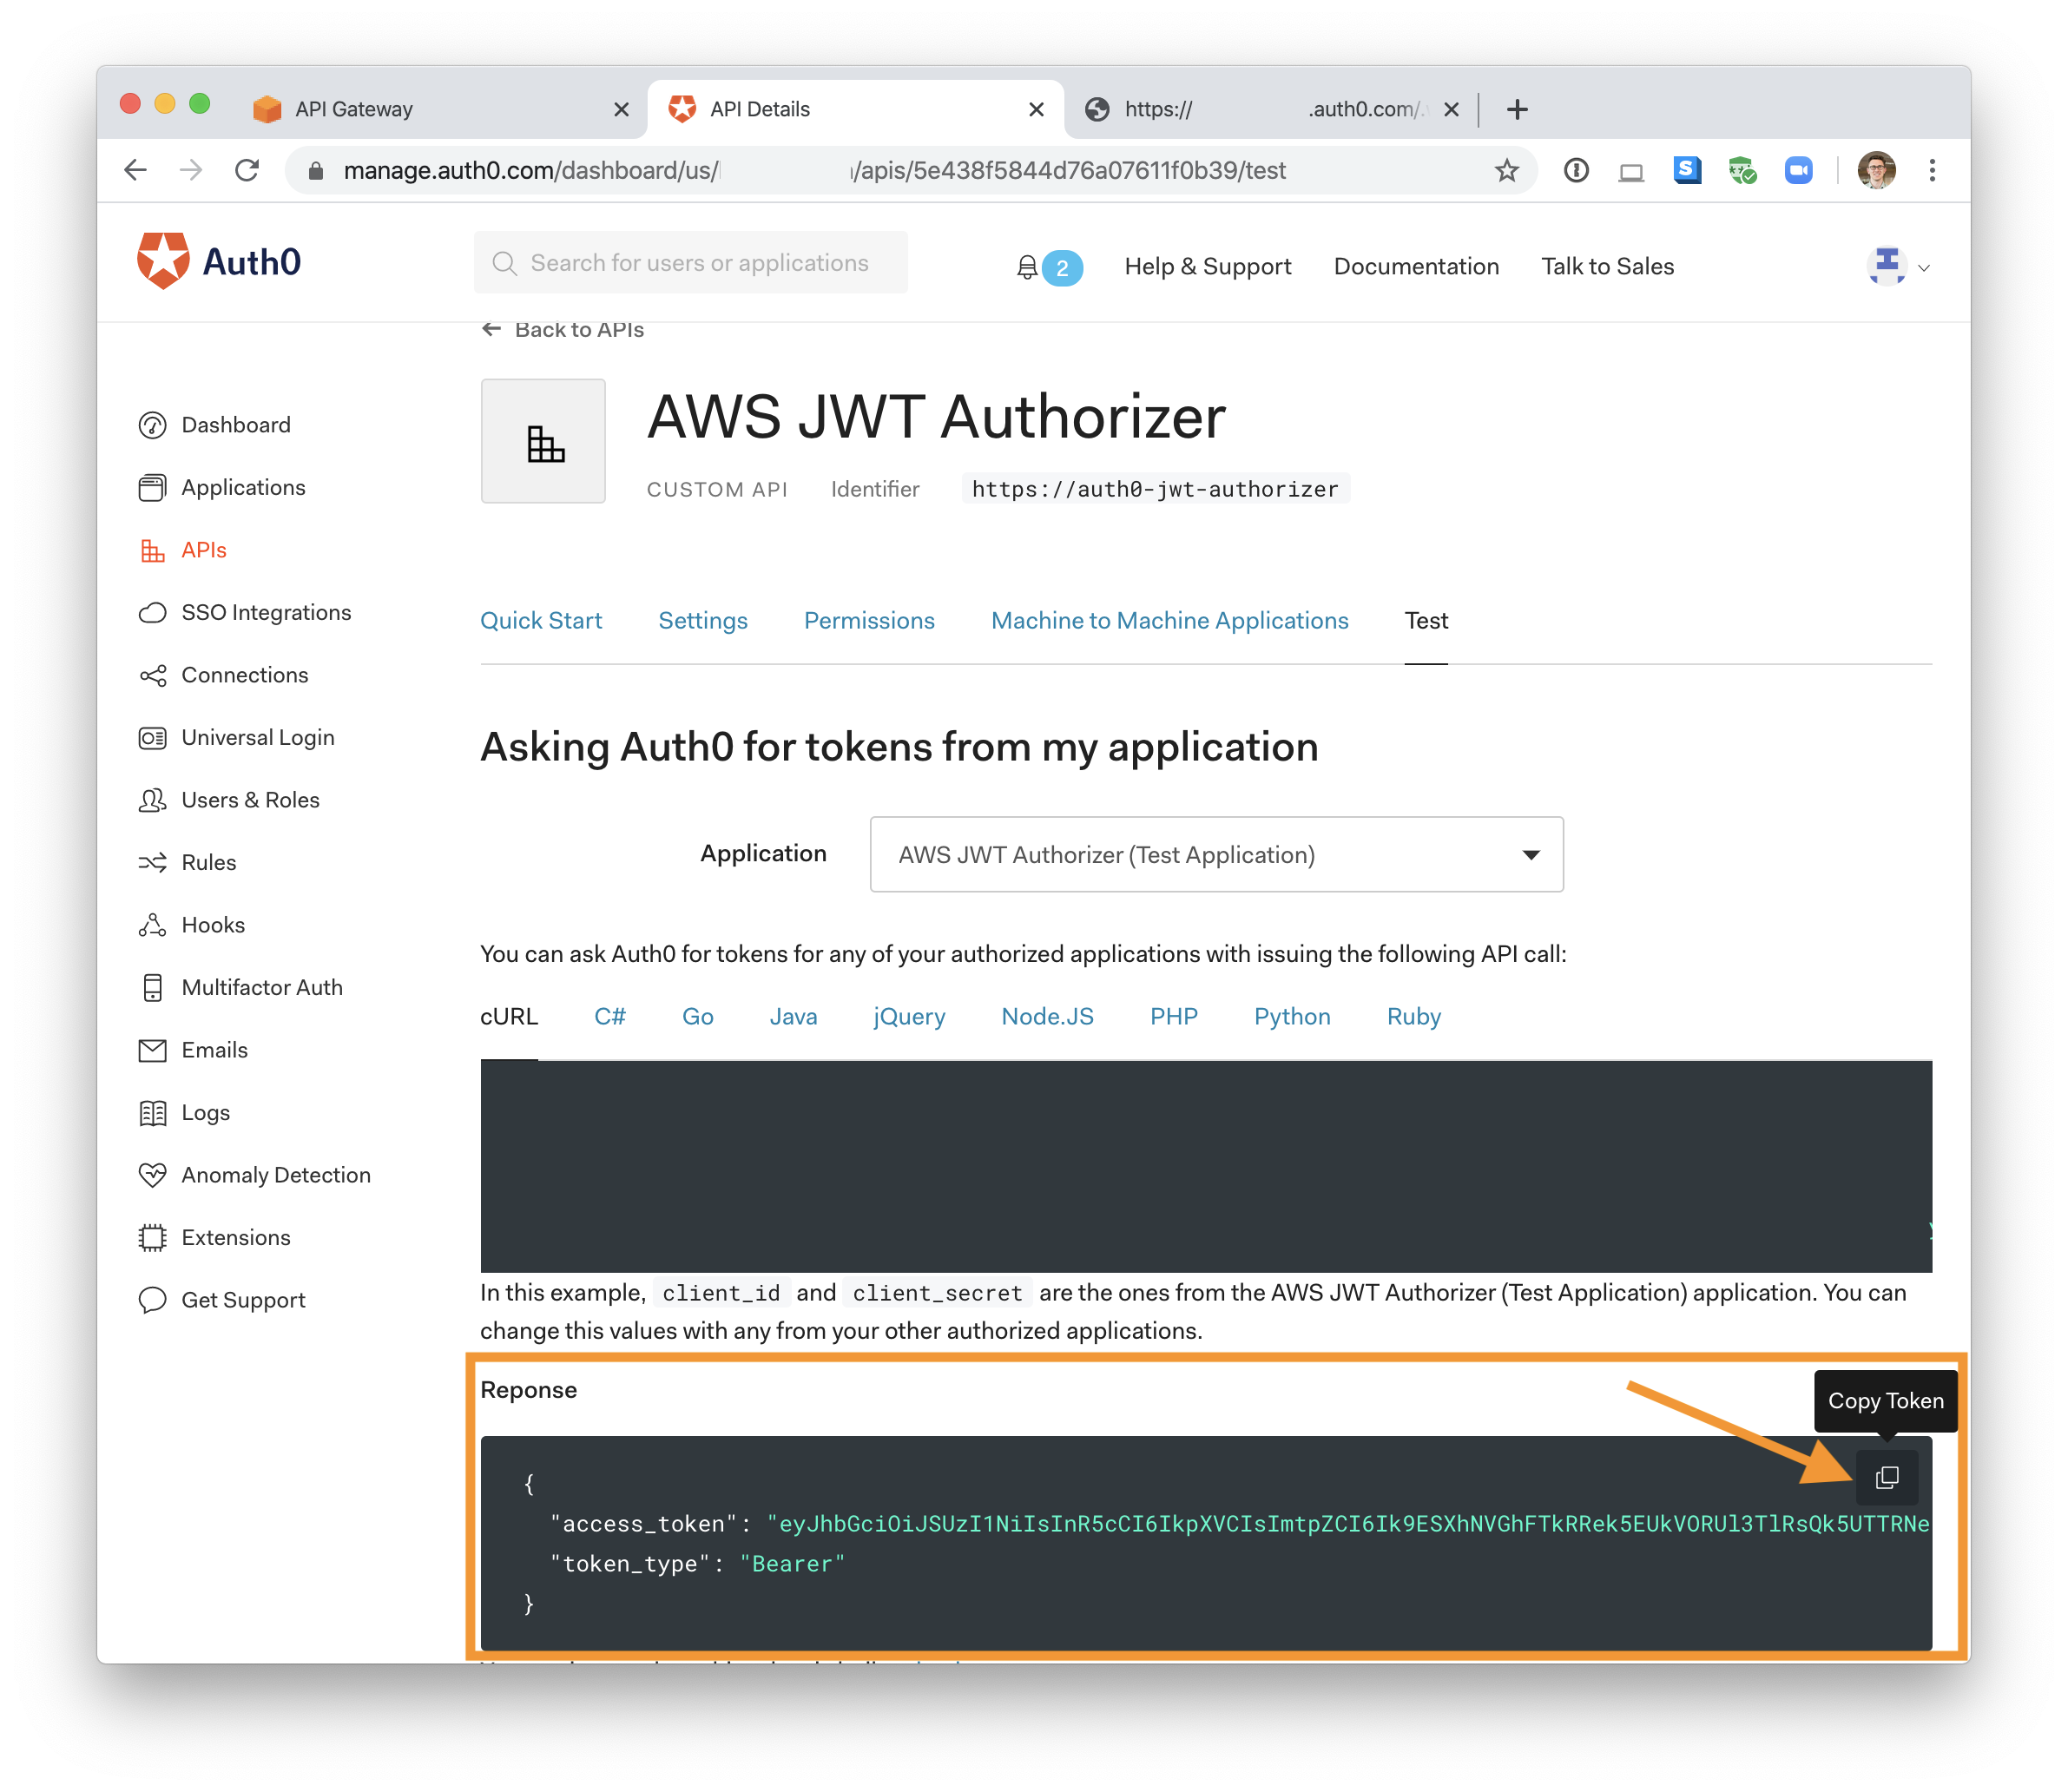 The access_token property from Auth0 test section